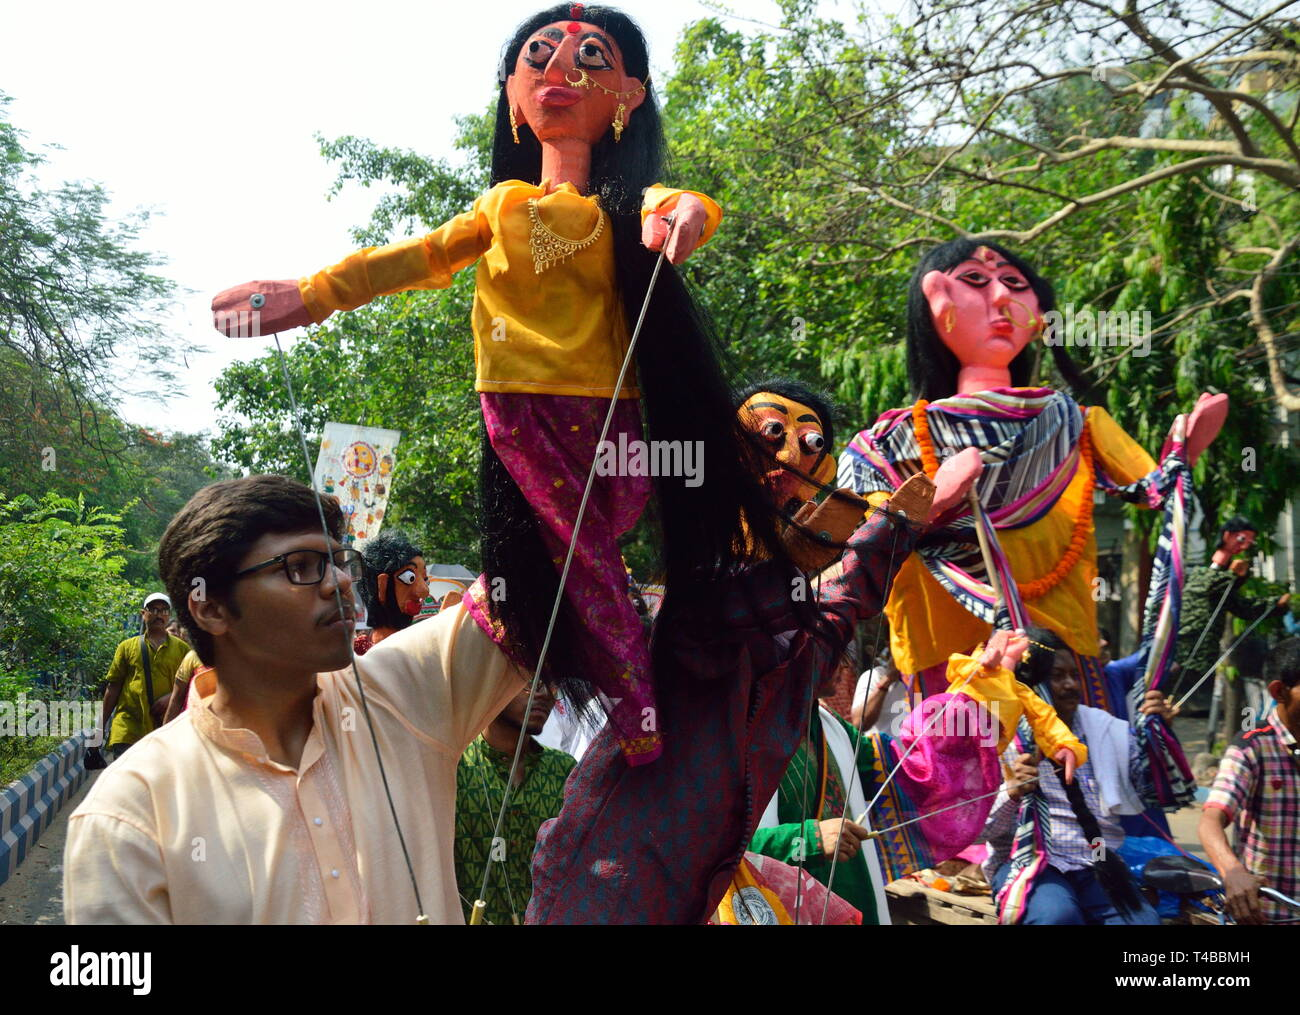 Kolkata, India. 15th Apr, 2019. Bengali new year celebrated in Kolkata. People celebrate this day with music, dance, wearing new clothes, and many of them take part of the road rally with masks, placards and songs. Credit: Suvrajit Dutta/Pacific Press/Alamy Live News - Stock Image